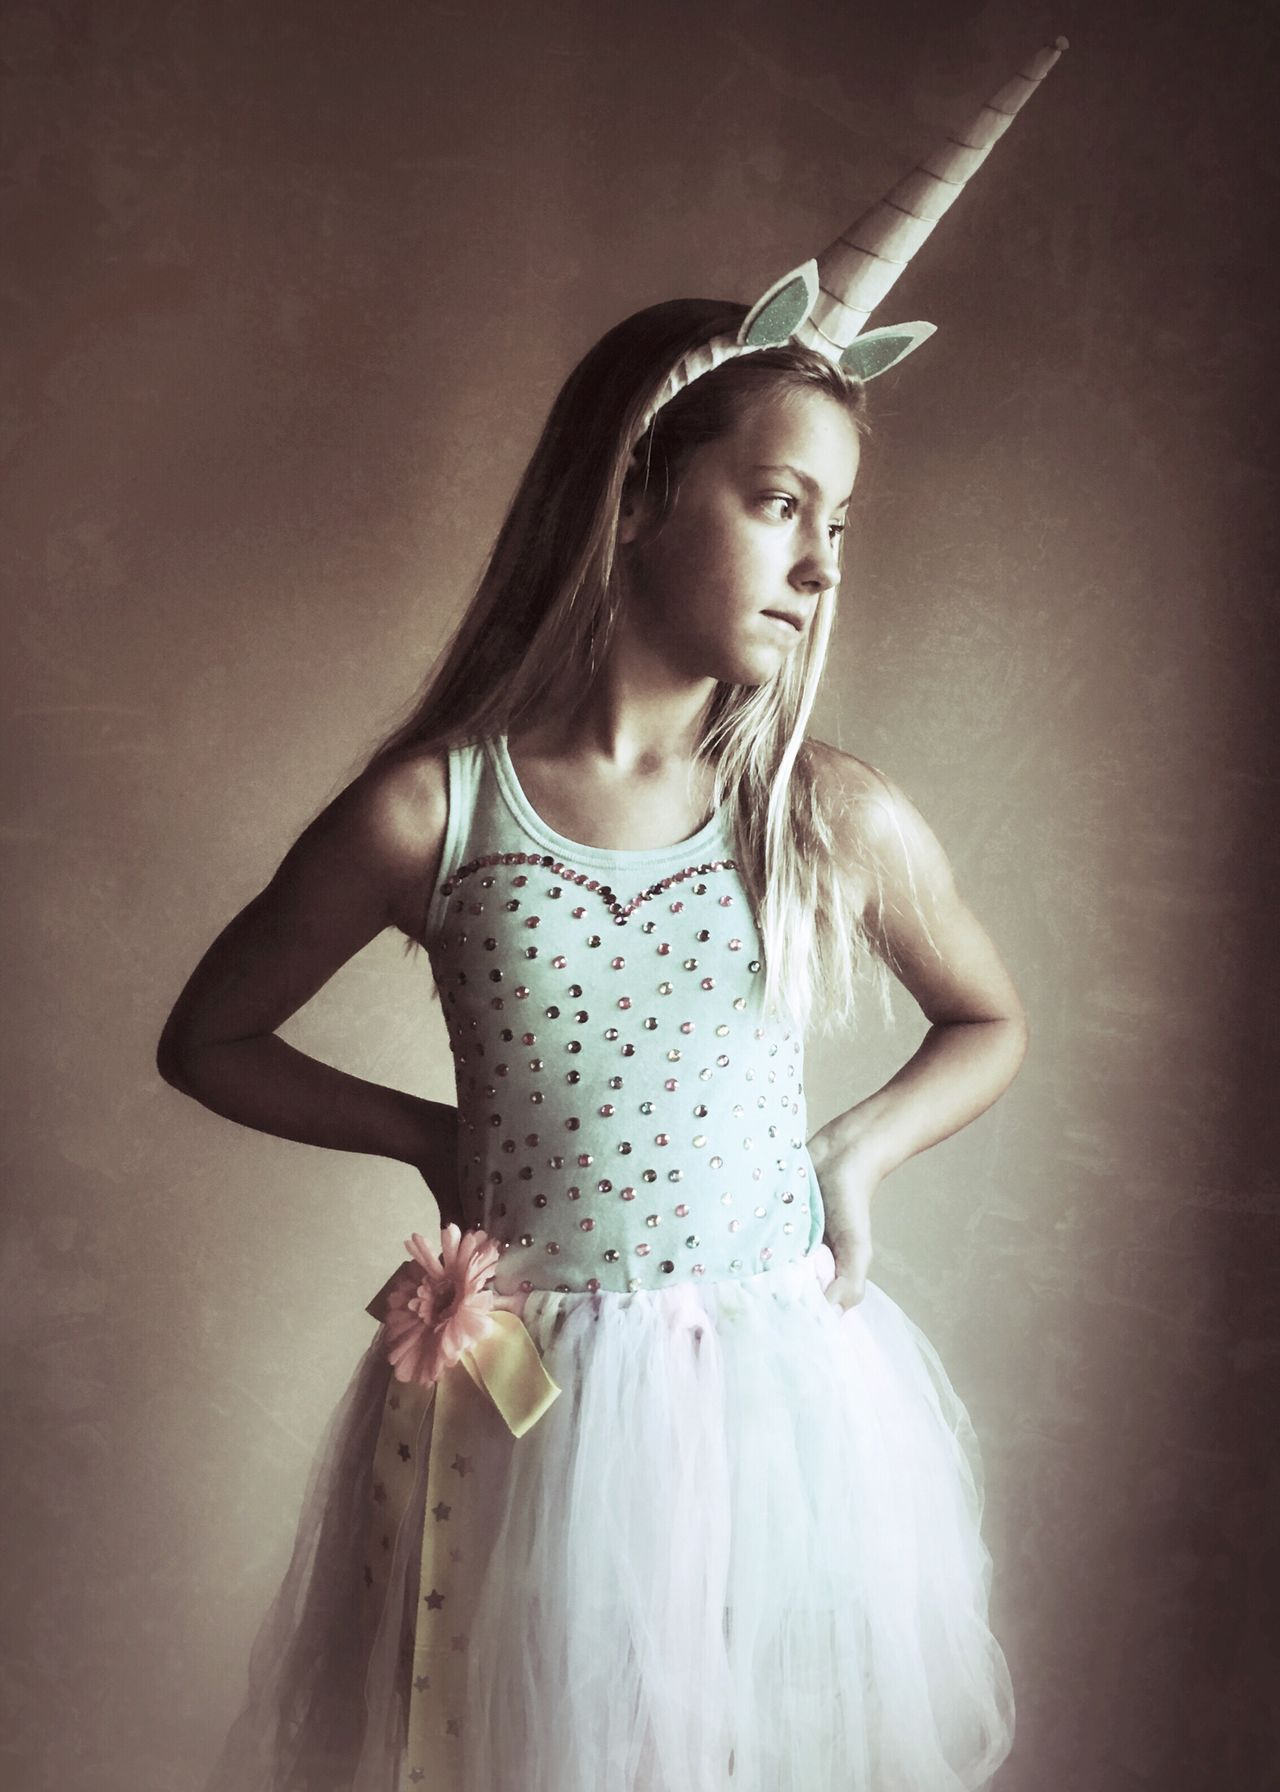 Beautiful stock photos of einhorn, child, one person, one girl only, people